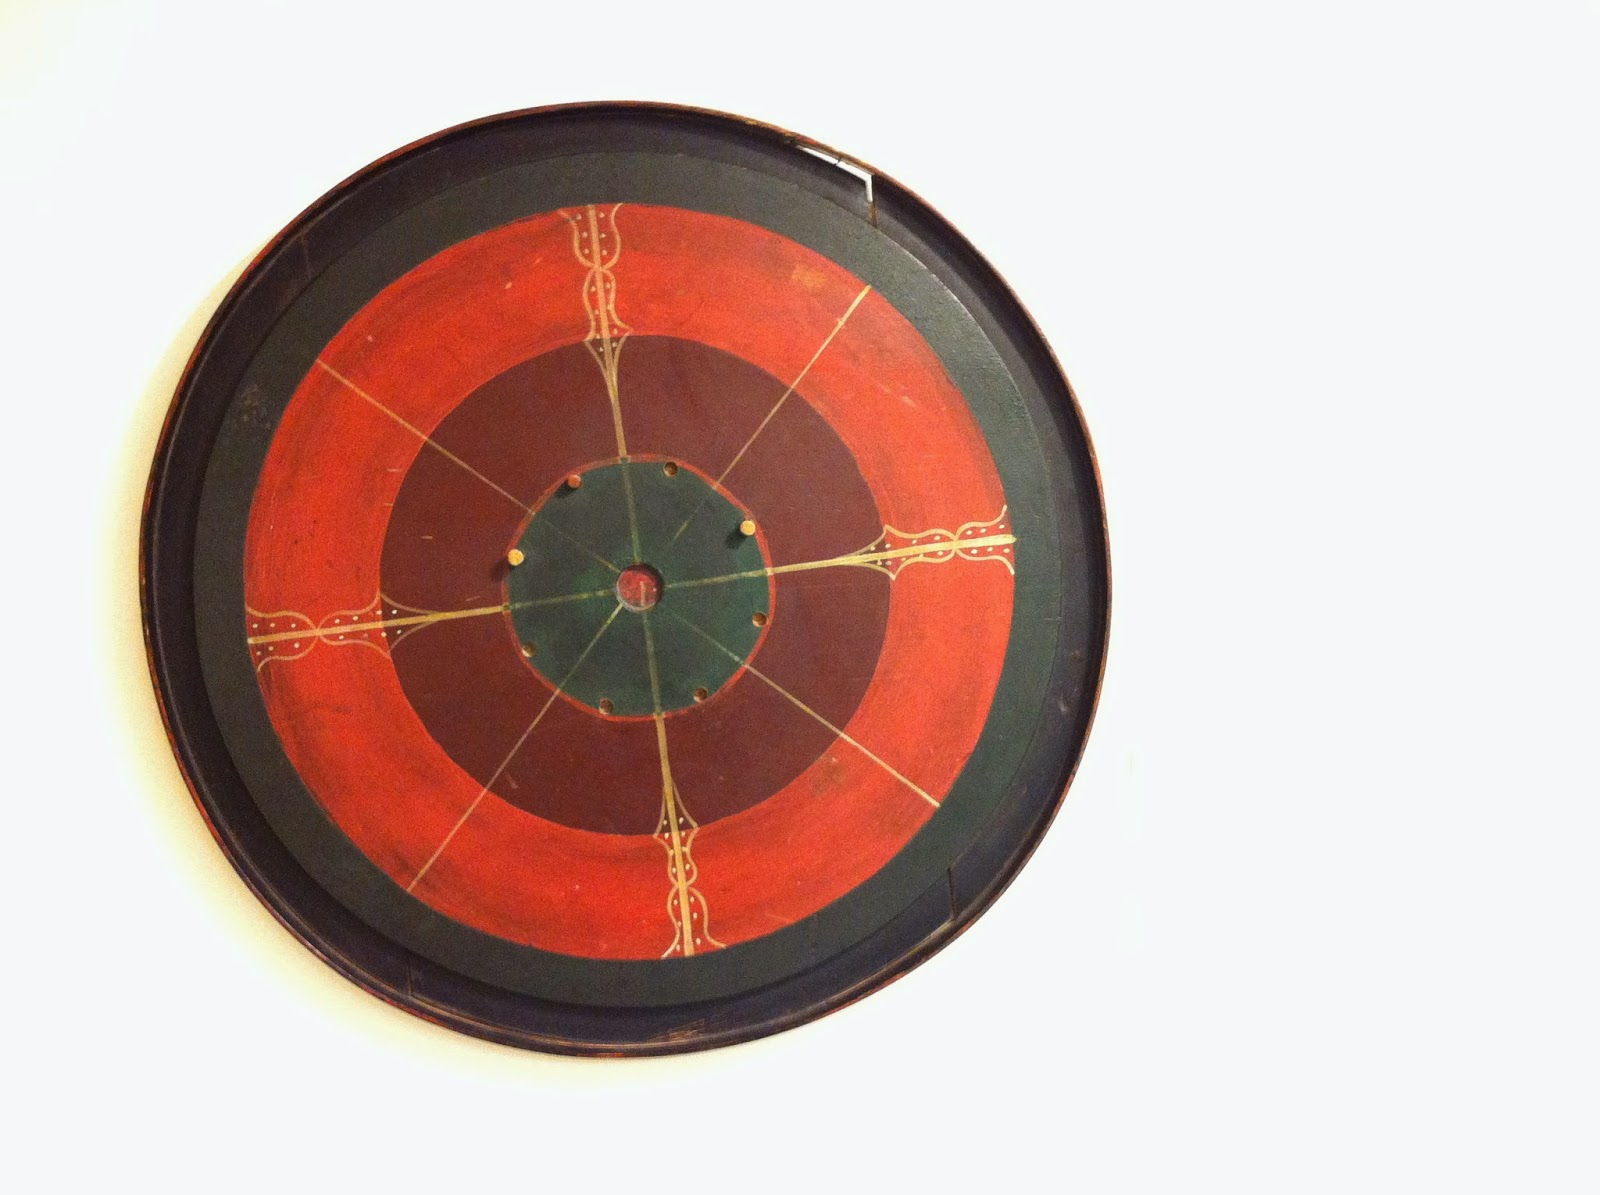 Made in 1875 in Sebastopol, the Joseph Schneider Haus museum houses the world's oldest known crokinole board.